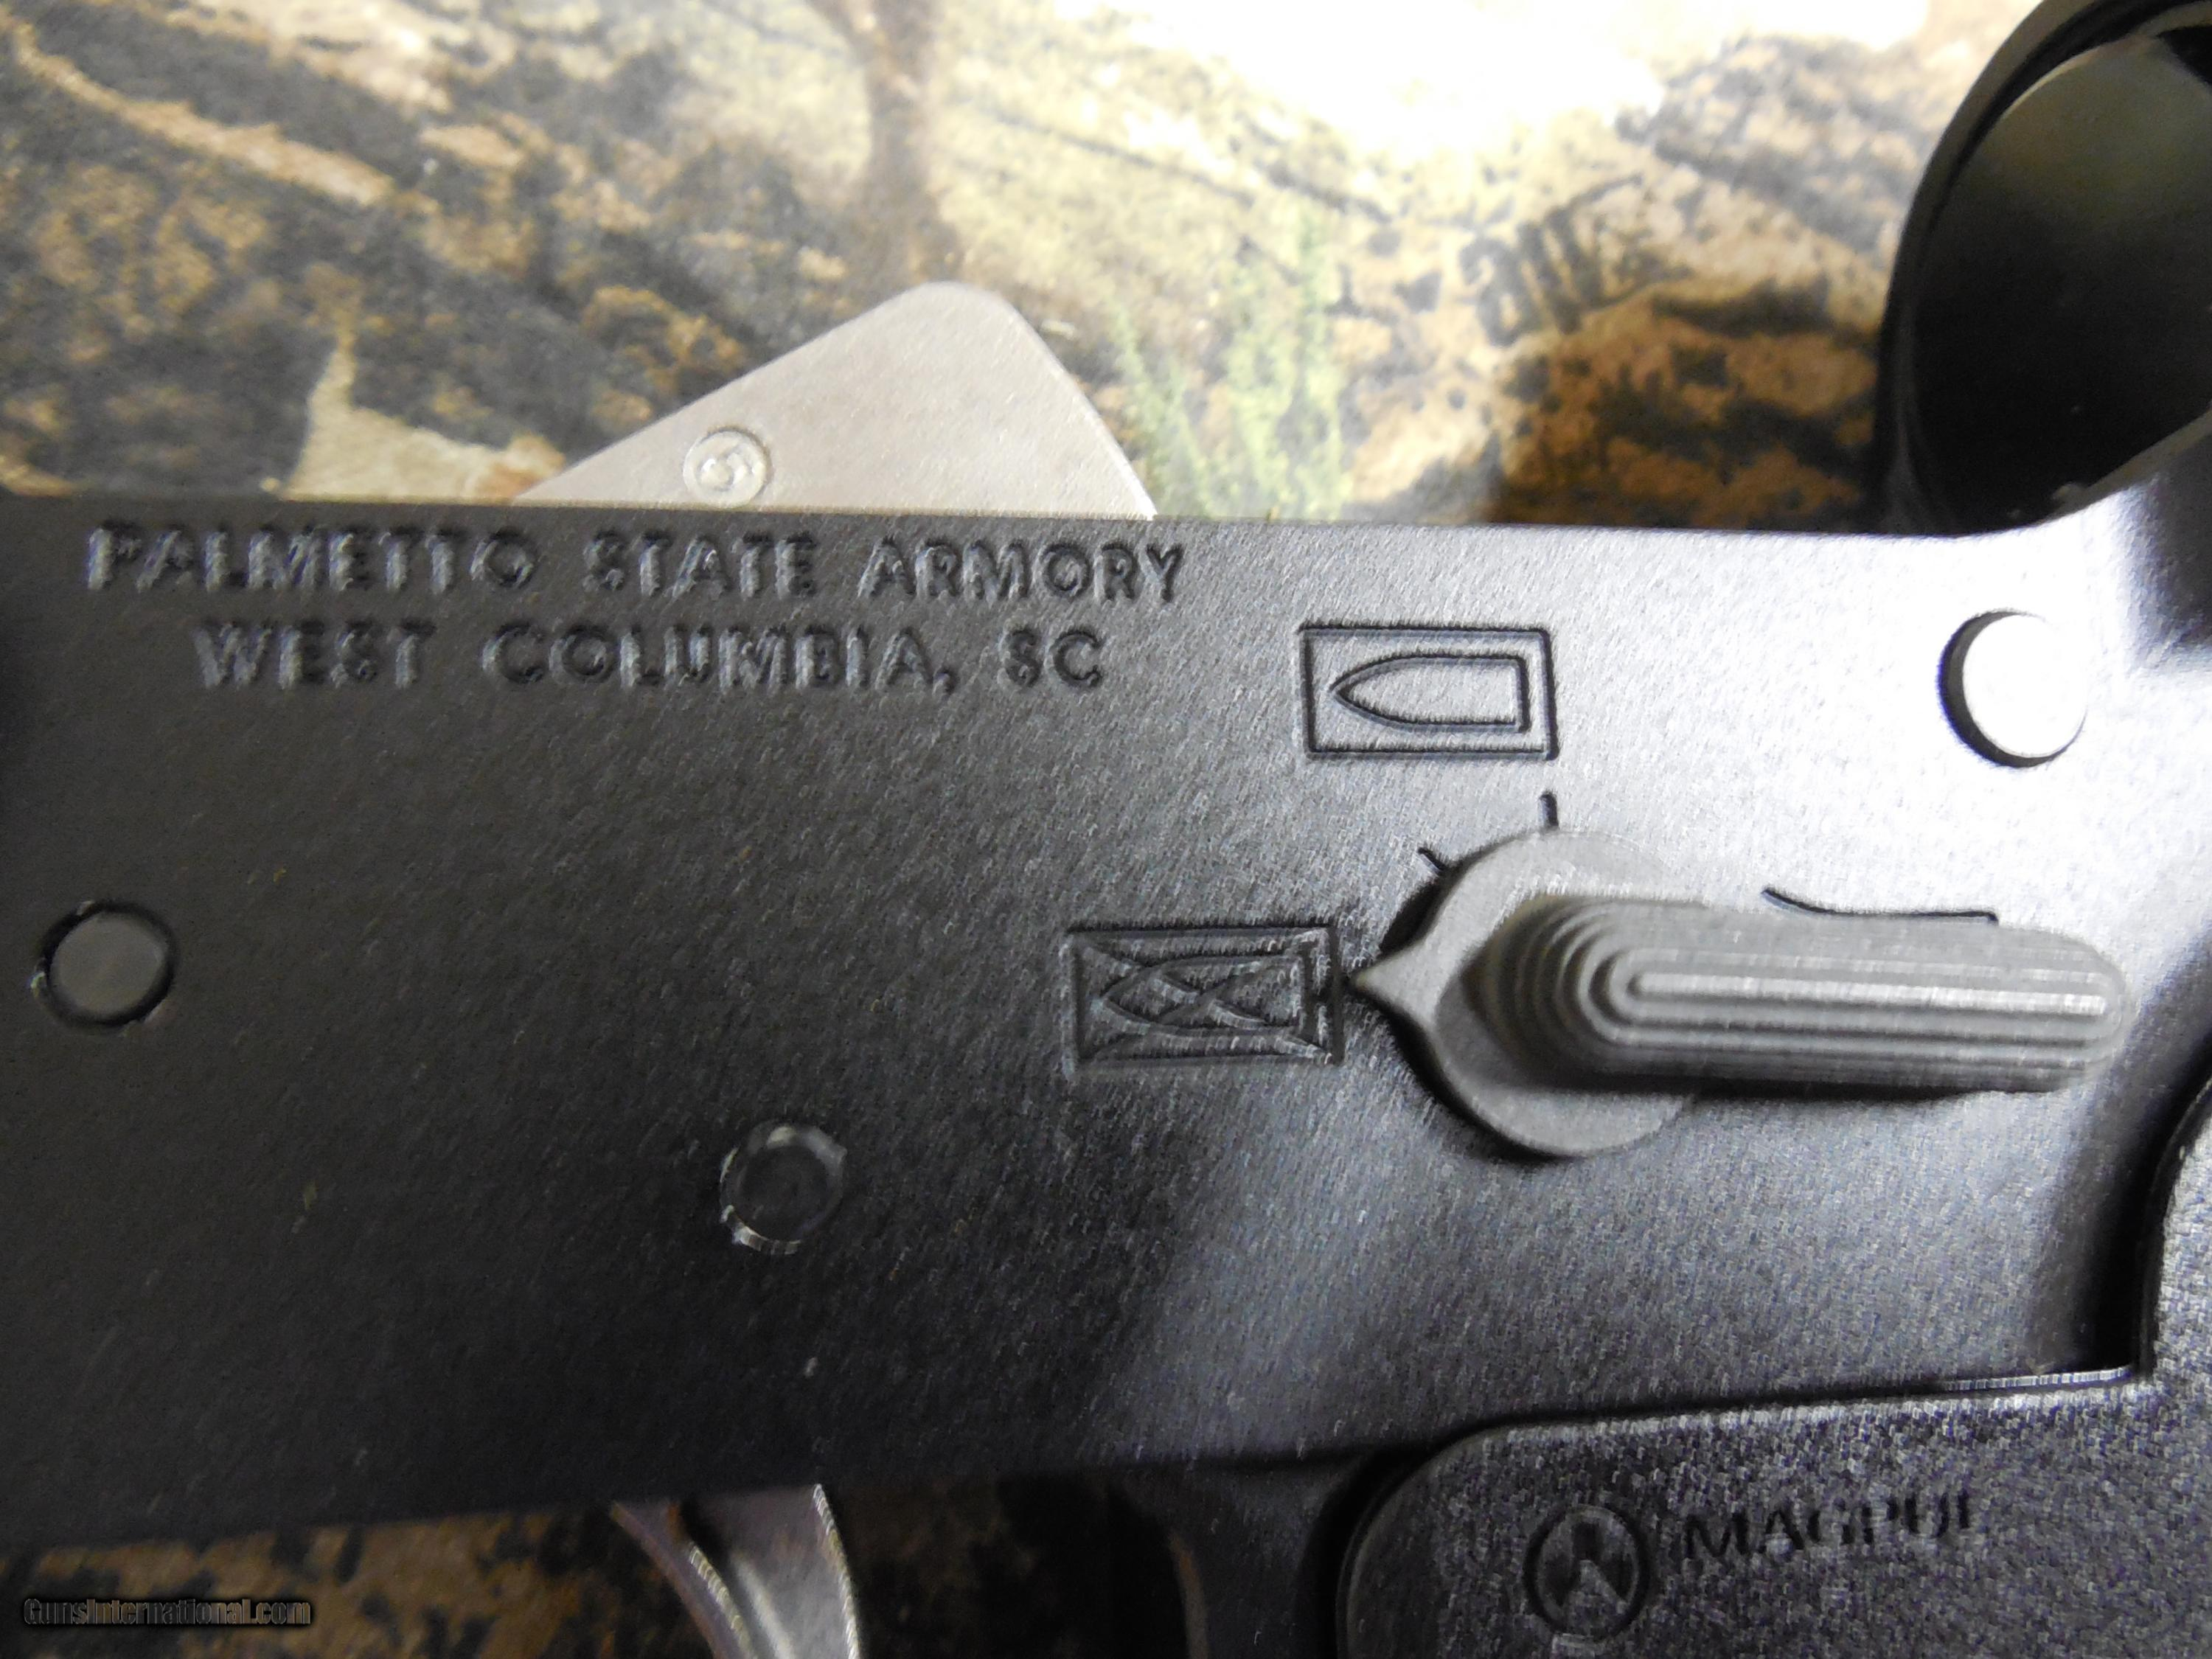 AR-15 PA-X9, P S A  COMPLETE LOWER IN 9-MM, USES GLOCK MAGAZINES